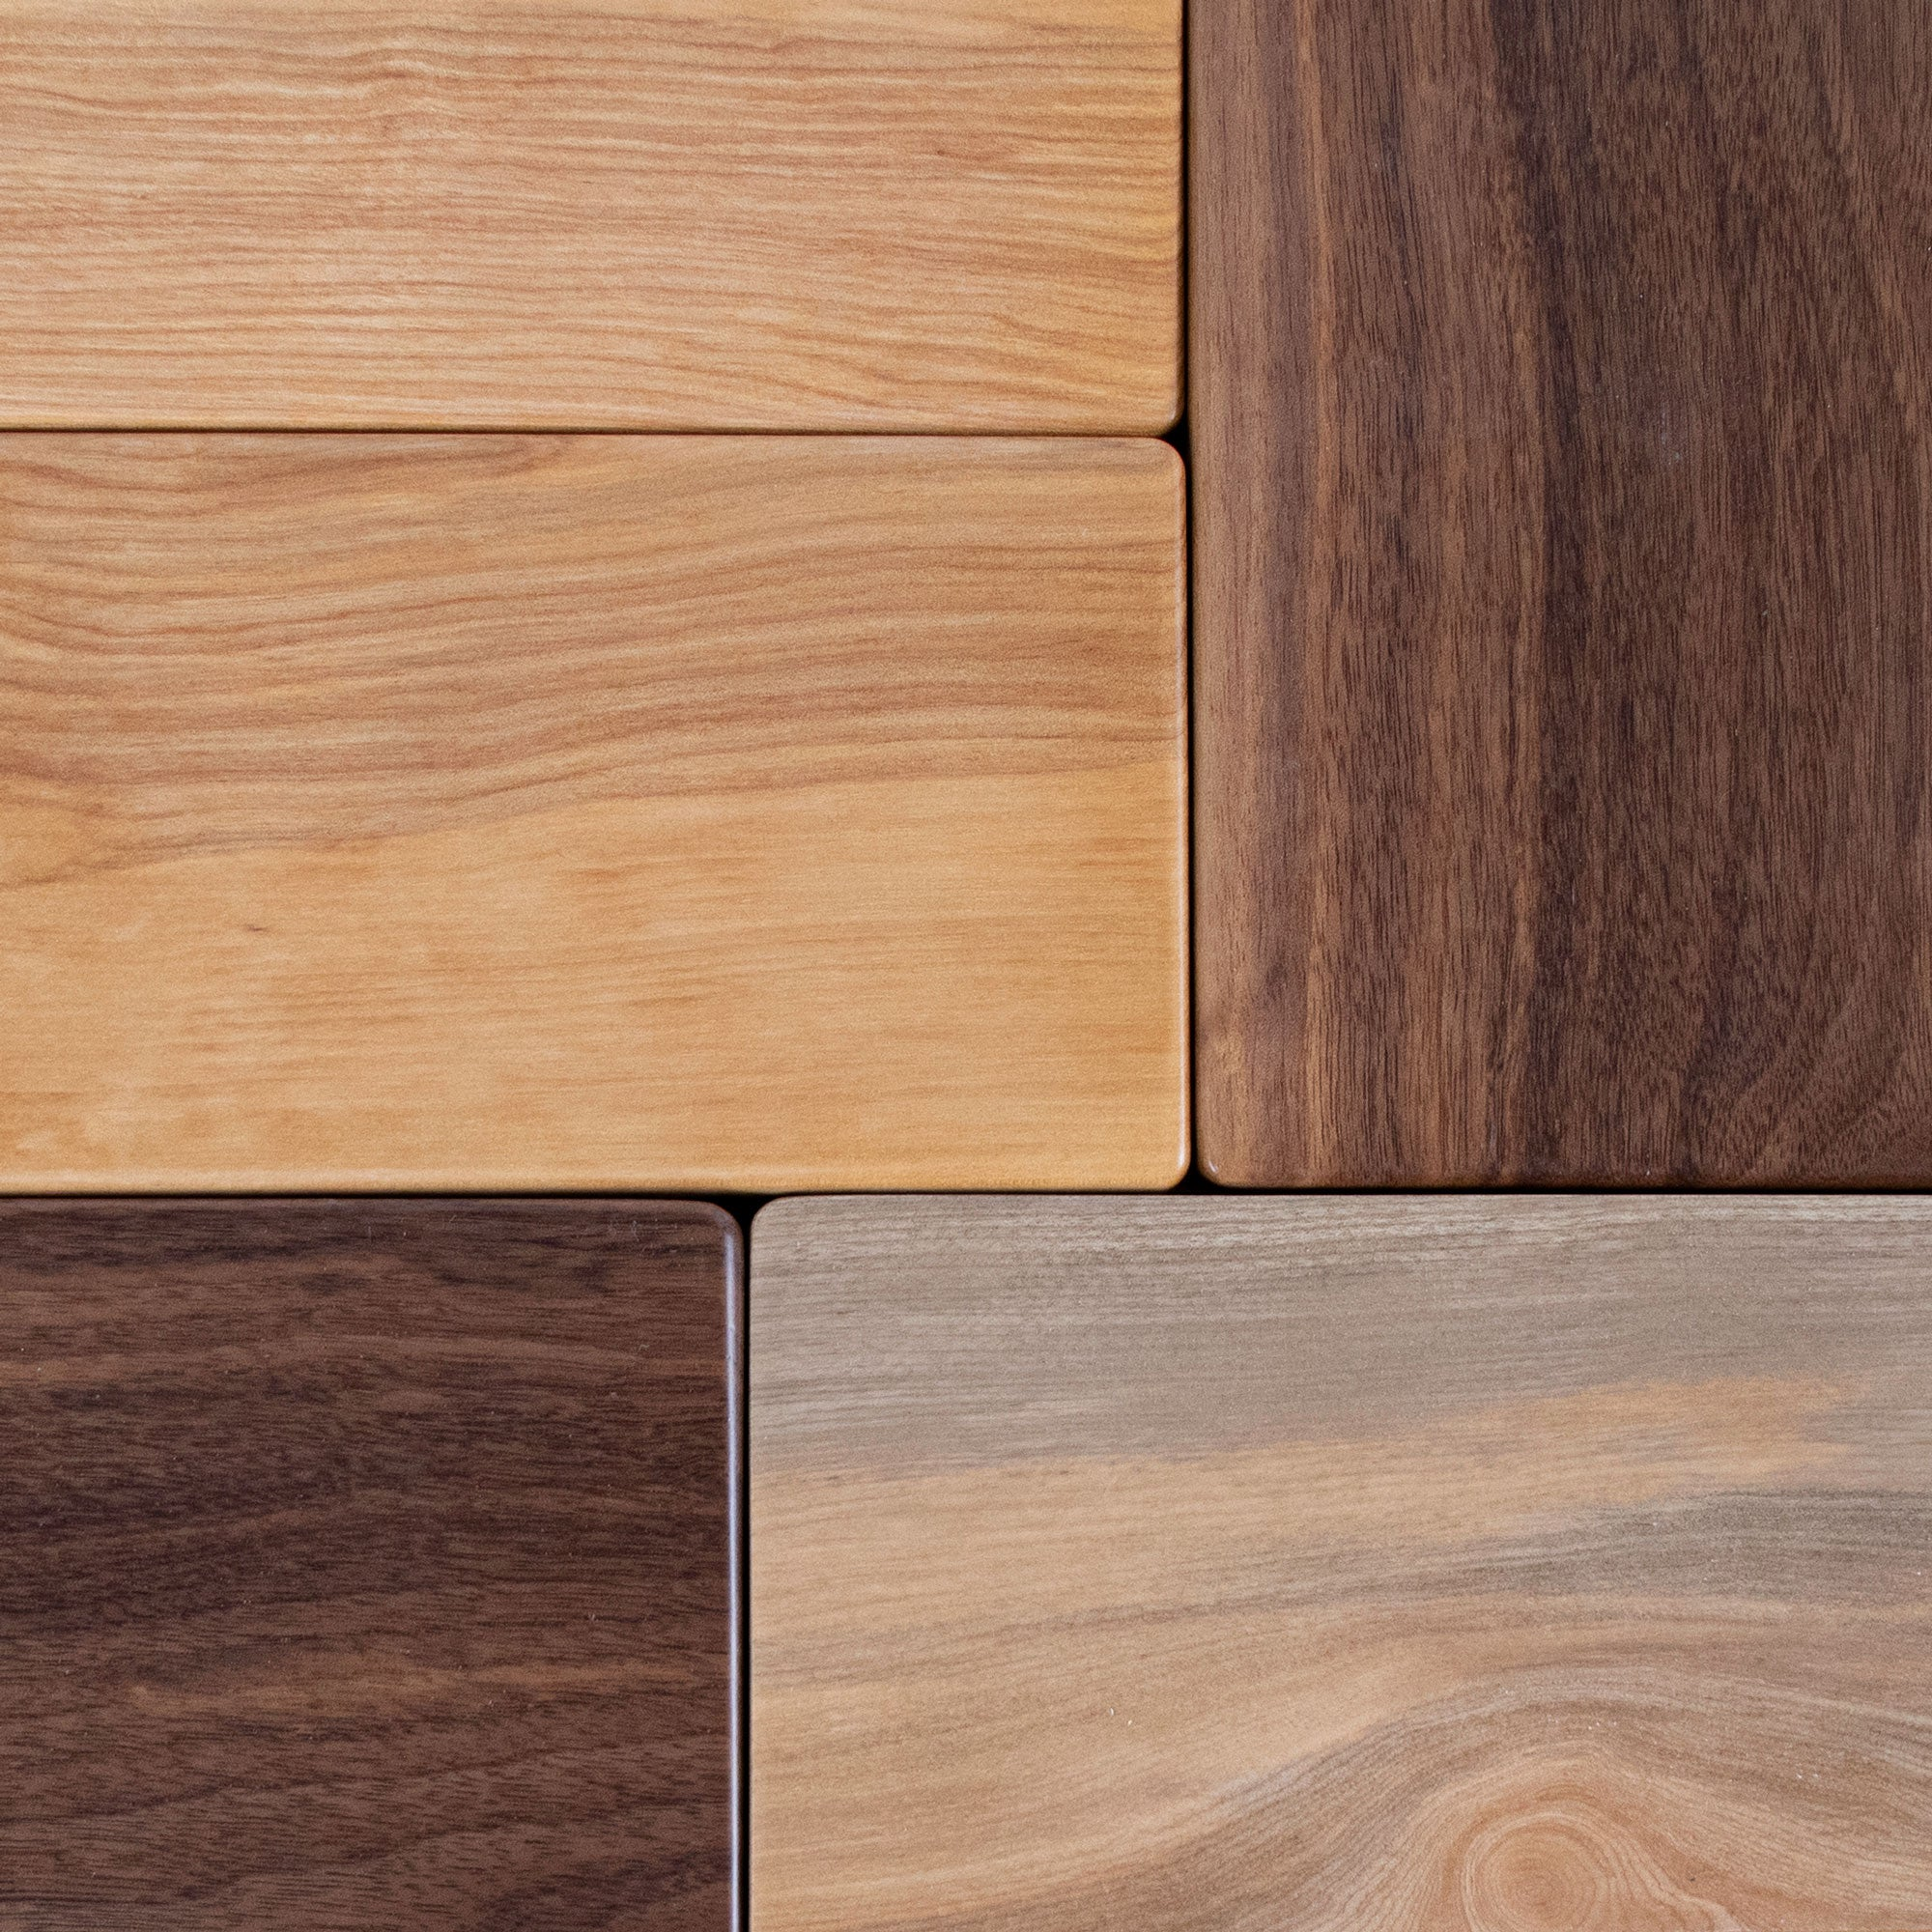 Samples of wood species and different patinas